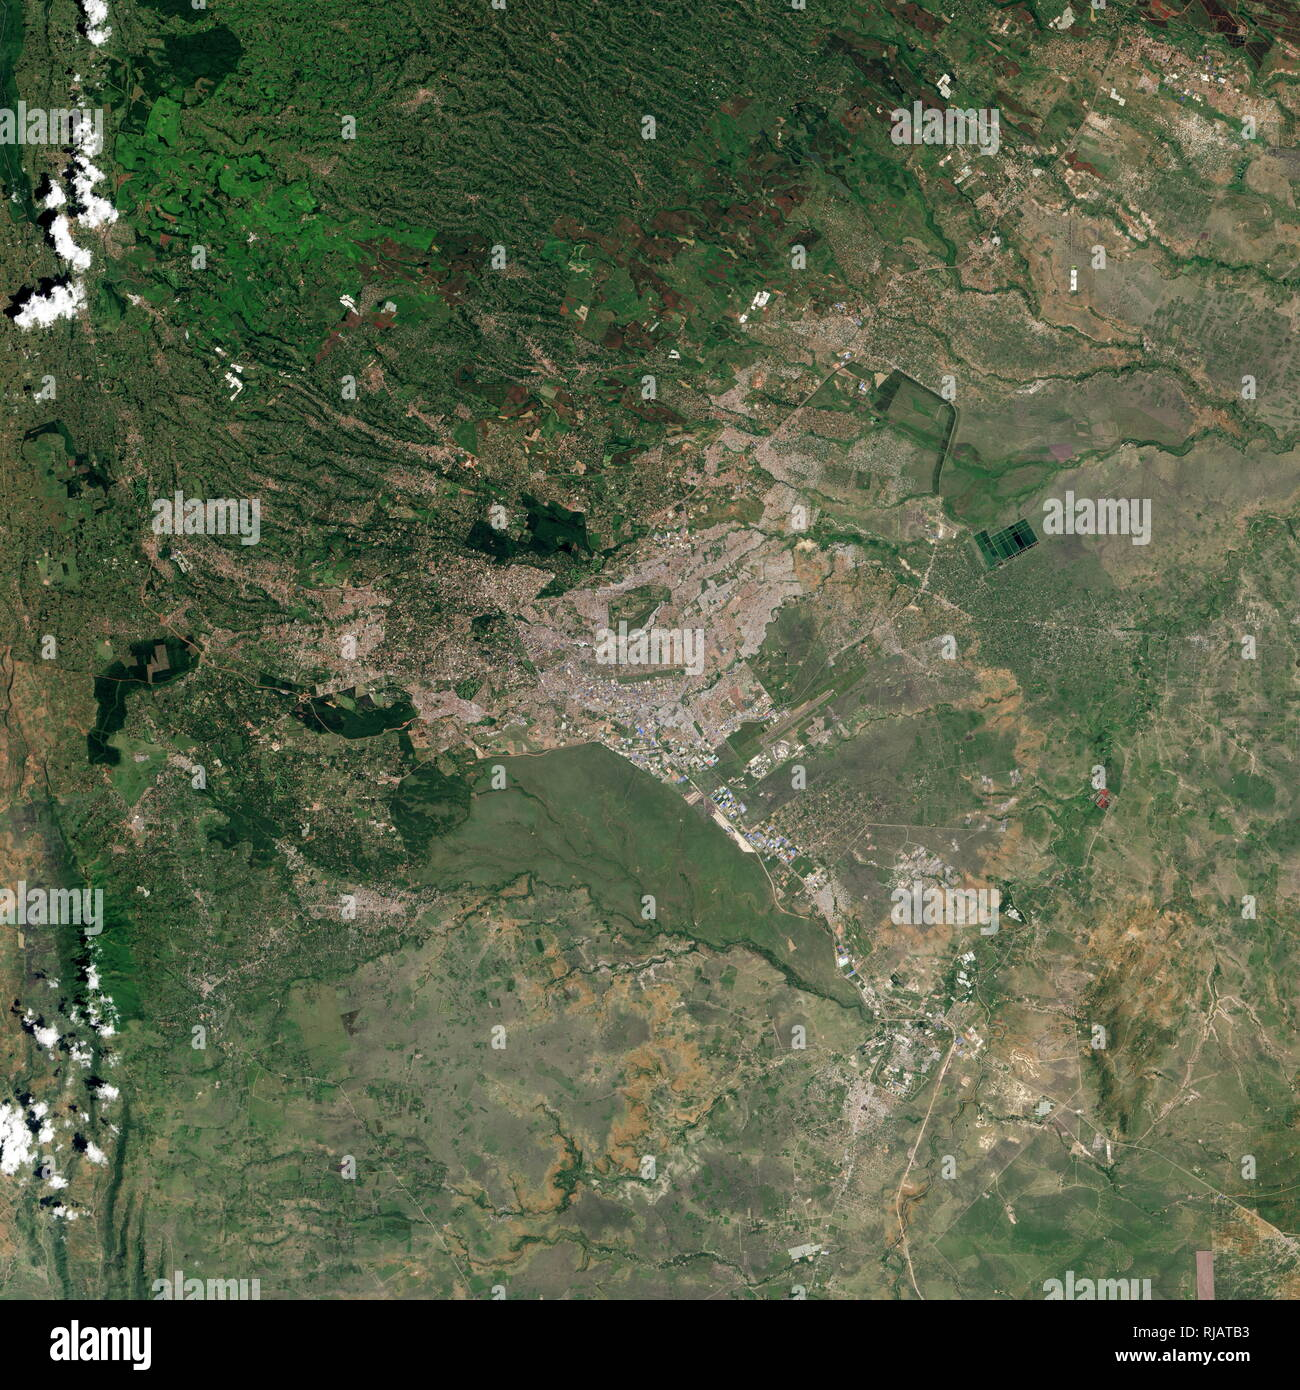 Satellite photograph of Nairobi in Kenya. Taken from the Landsat 8 in 2016, show the expansion of Kenya's capital in the past three decades. - Stock Image